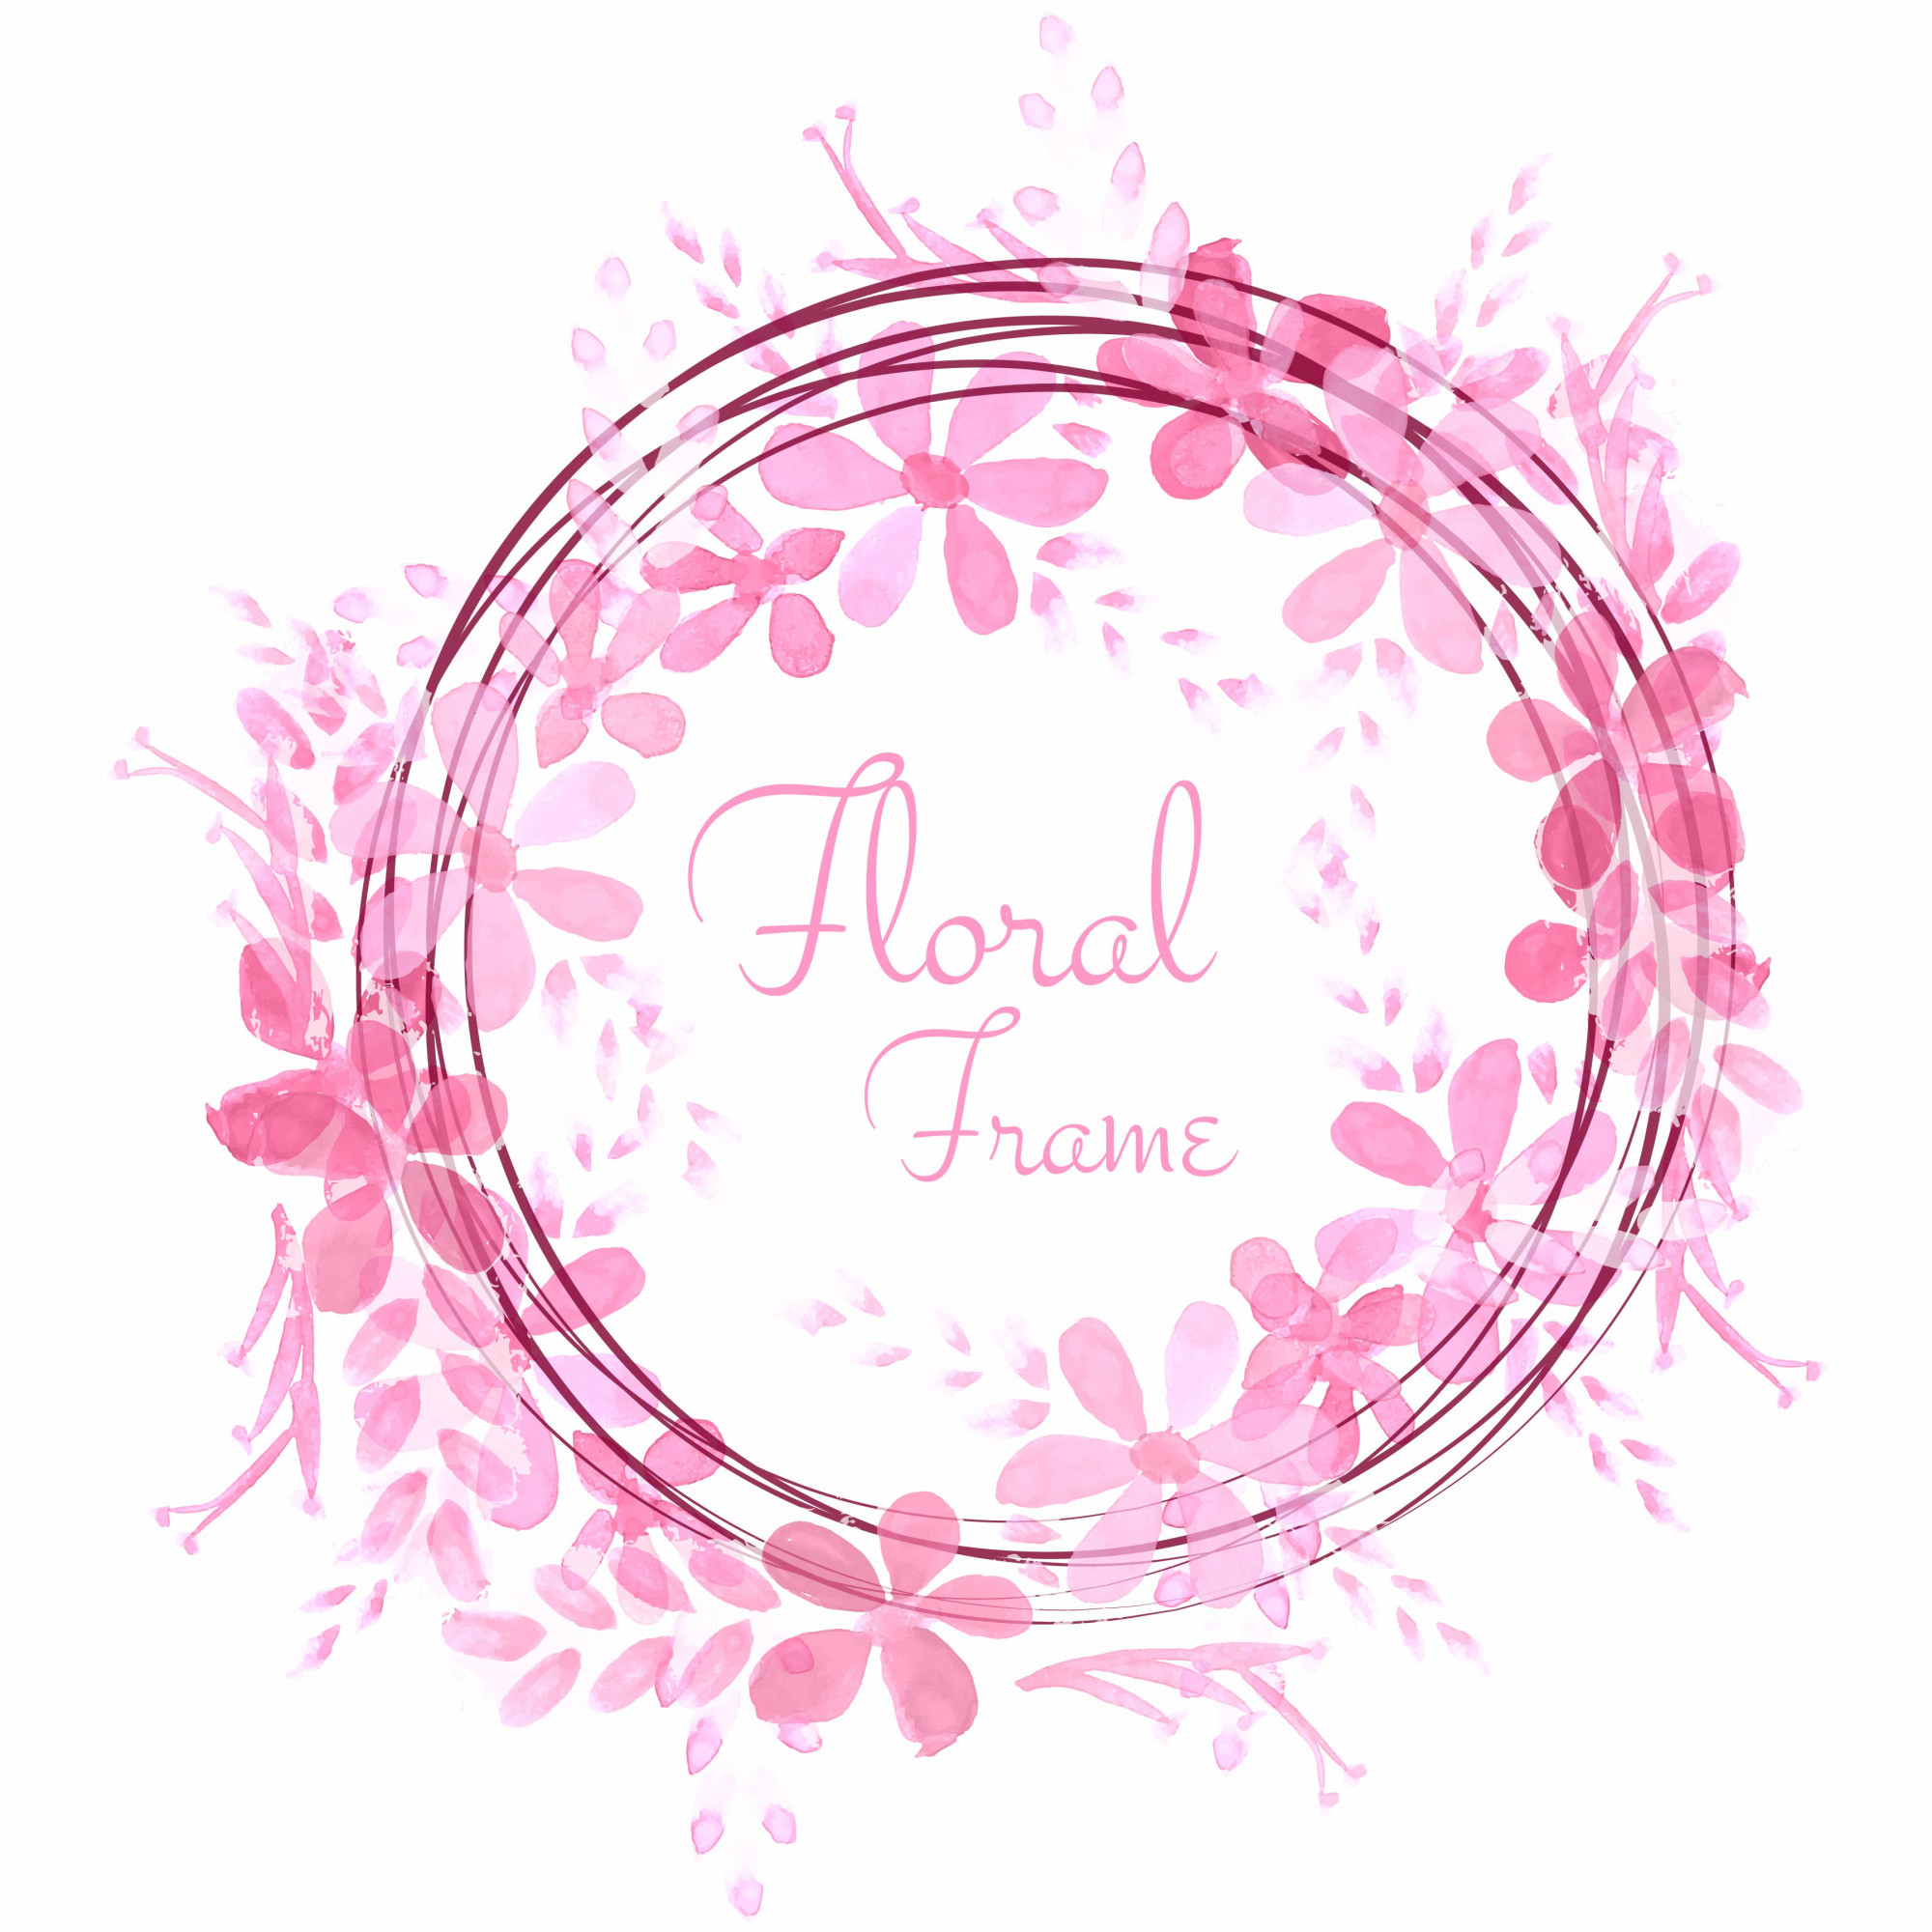 Abstract wedding floral frame background